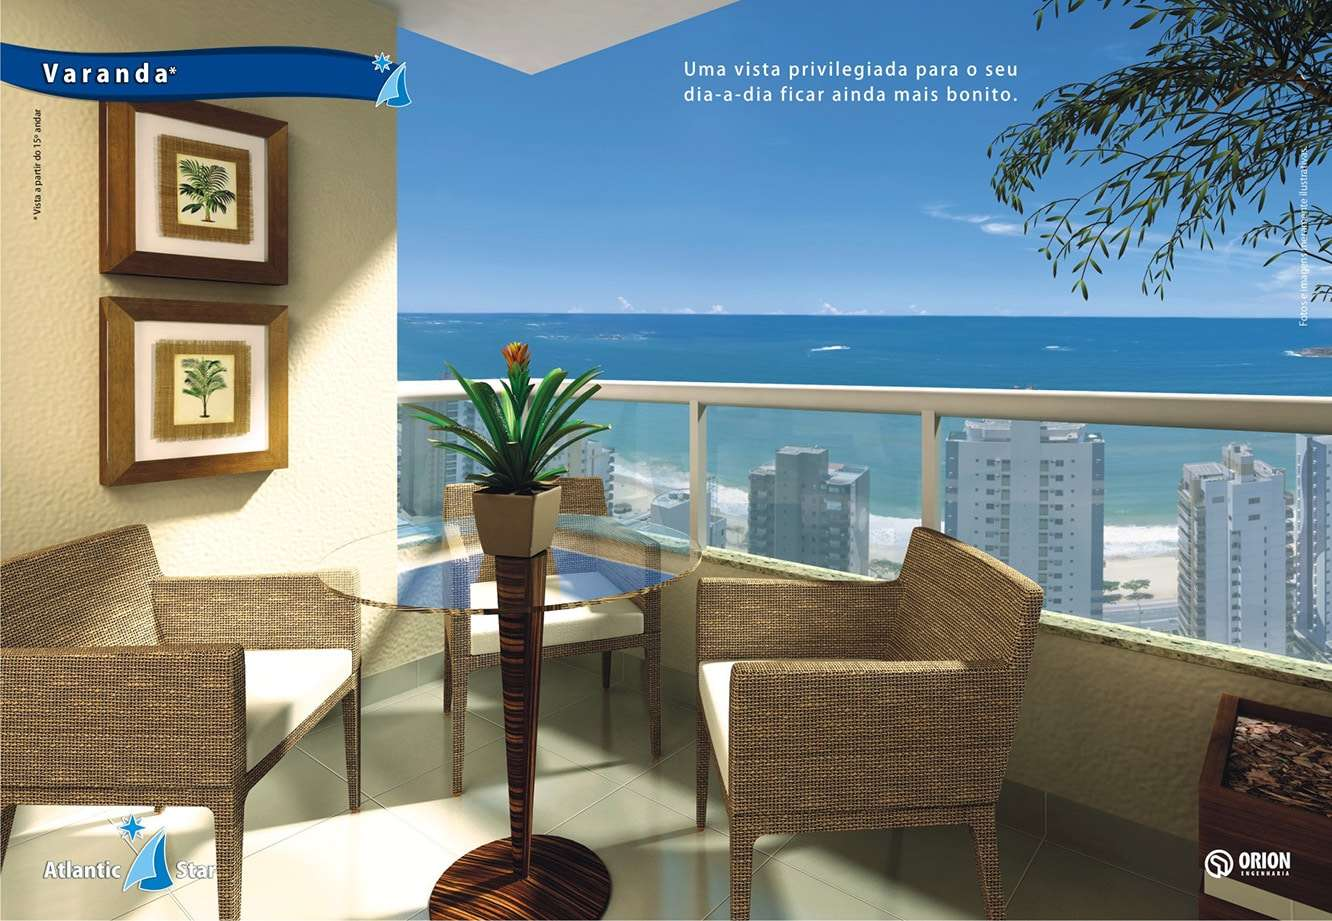 Residencial Atlantic Star   Revista Pagina08 09